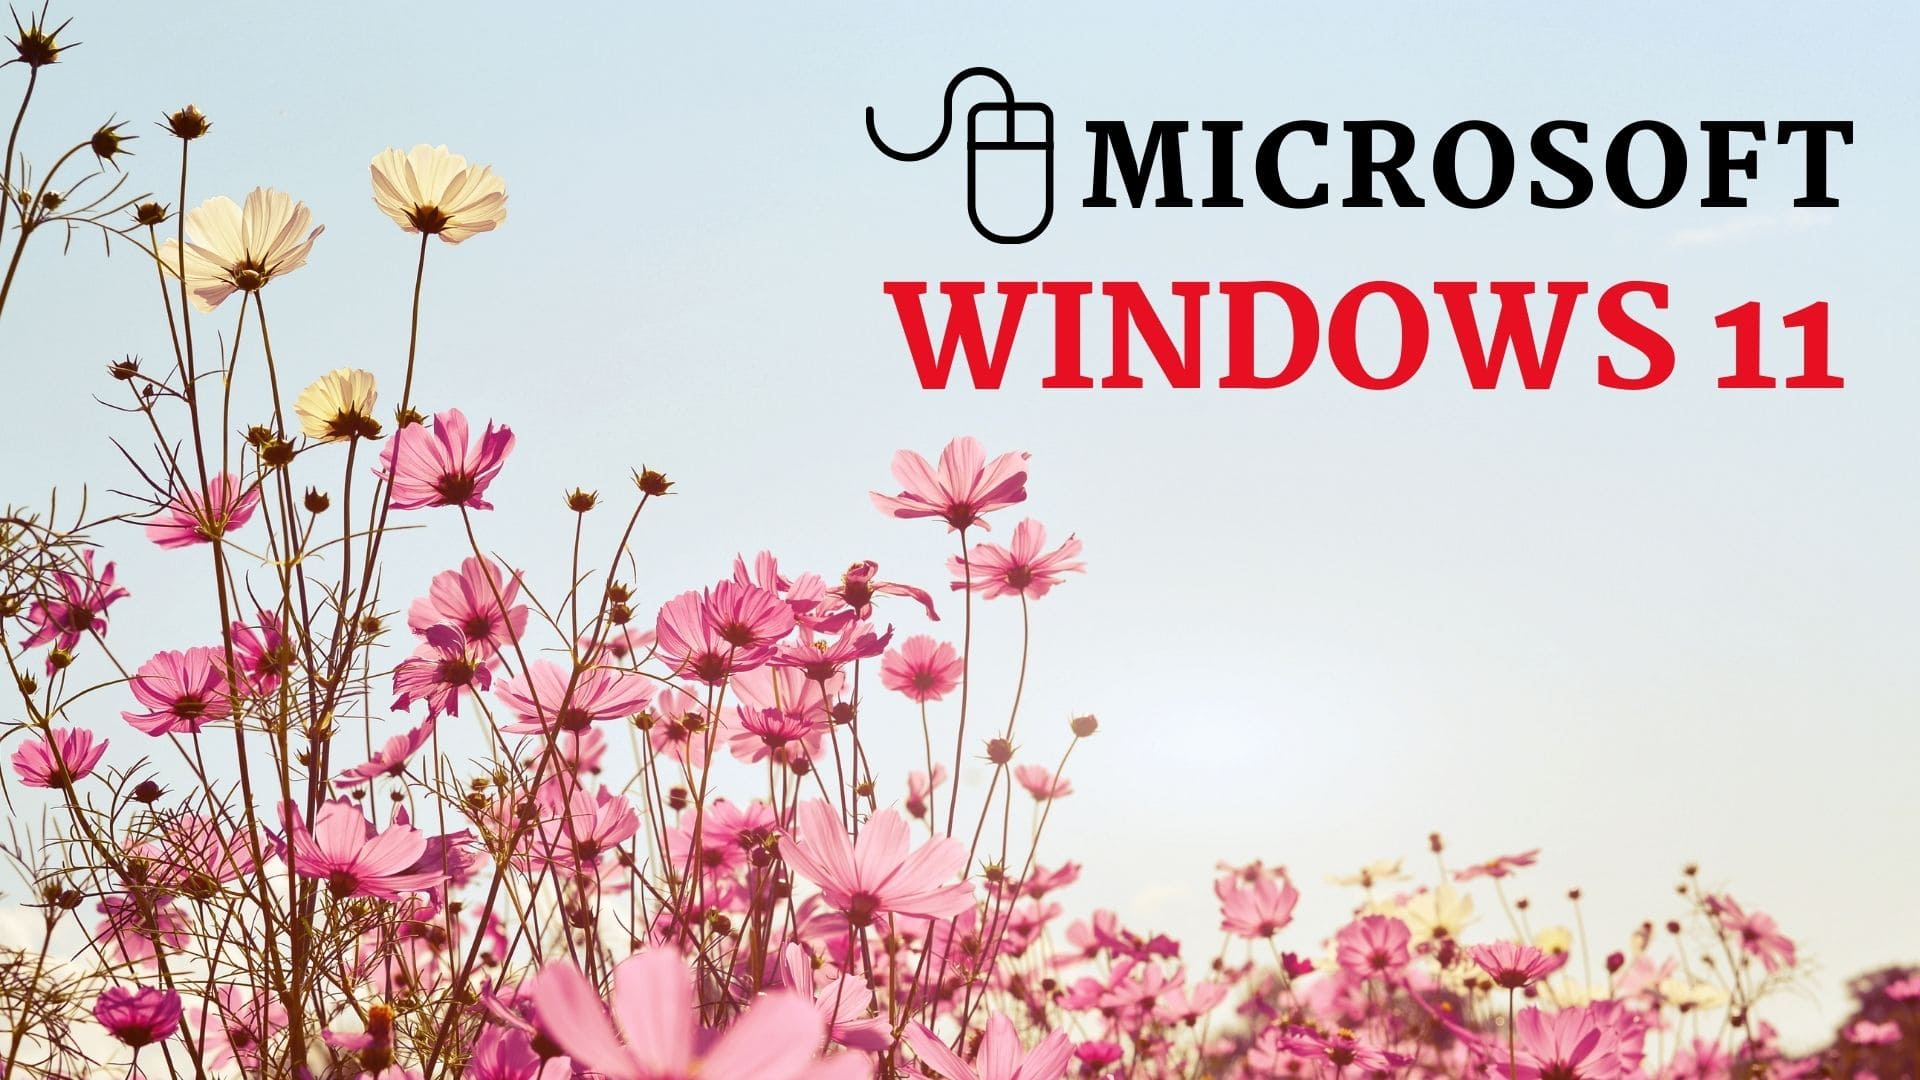 windows 11 launched